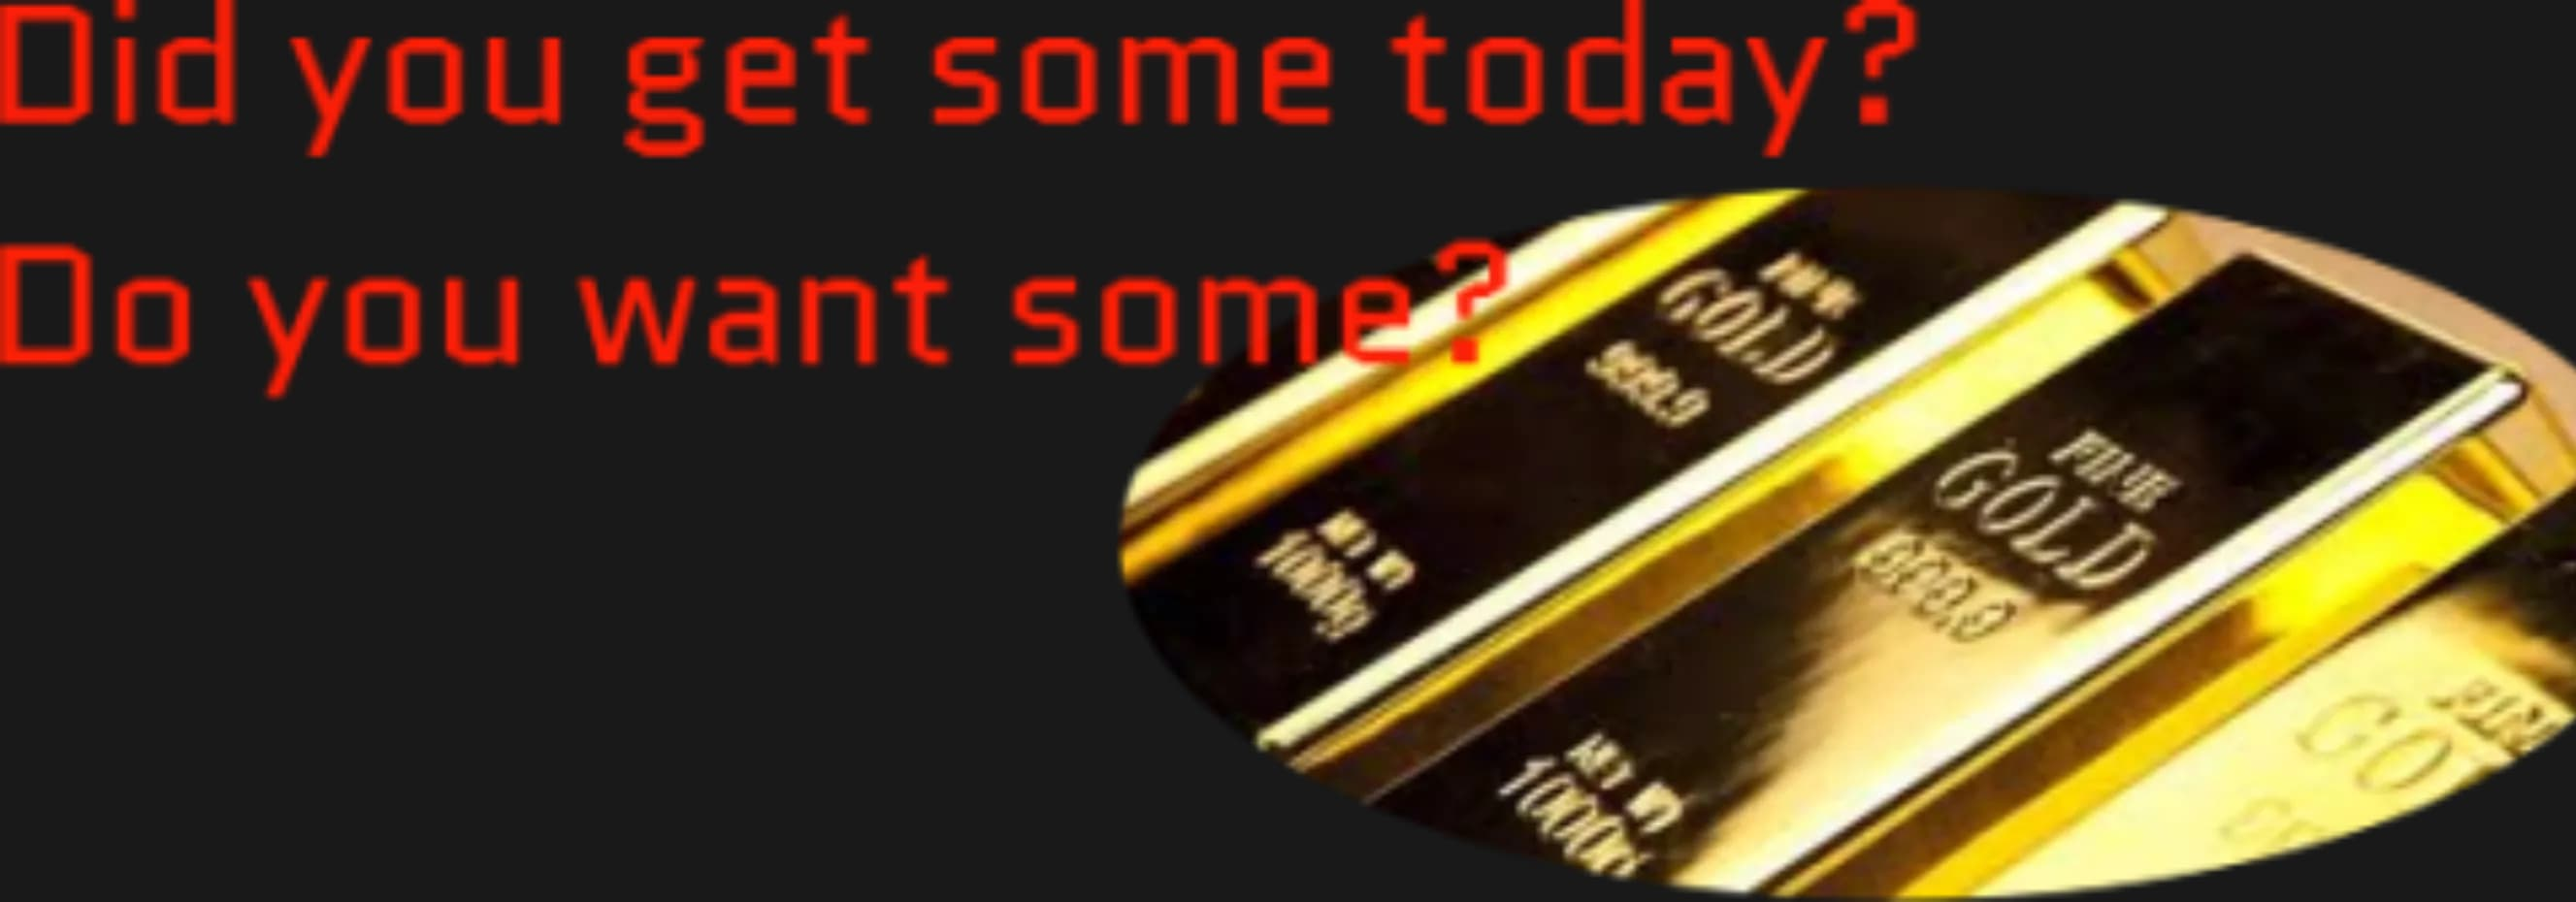 Crypto gold and freedom get some gold 1537401625